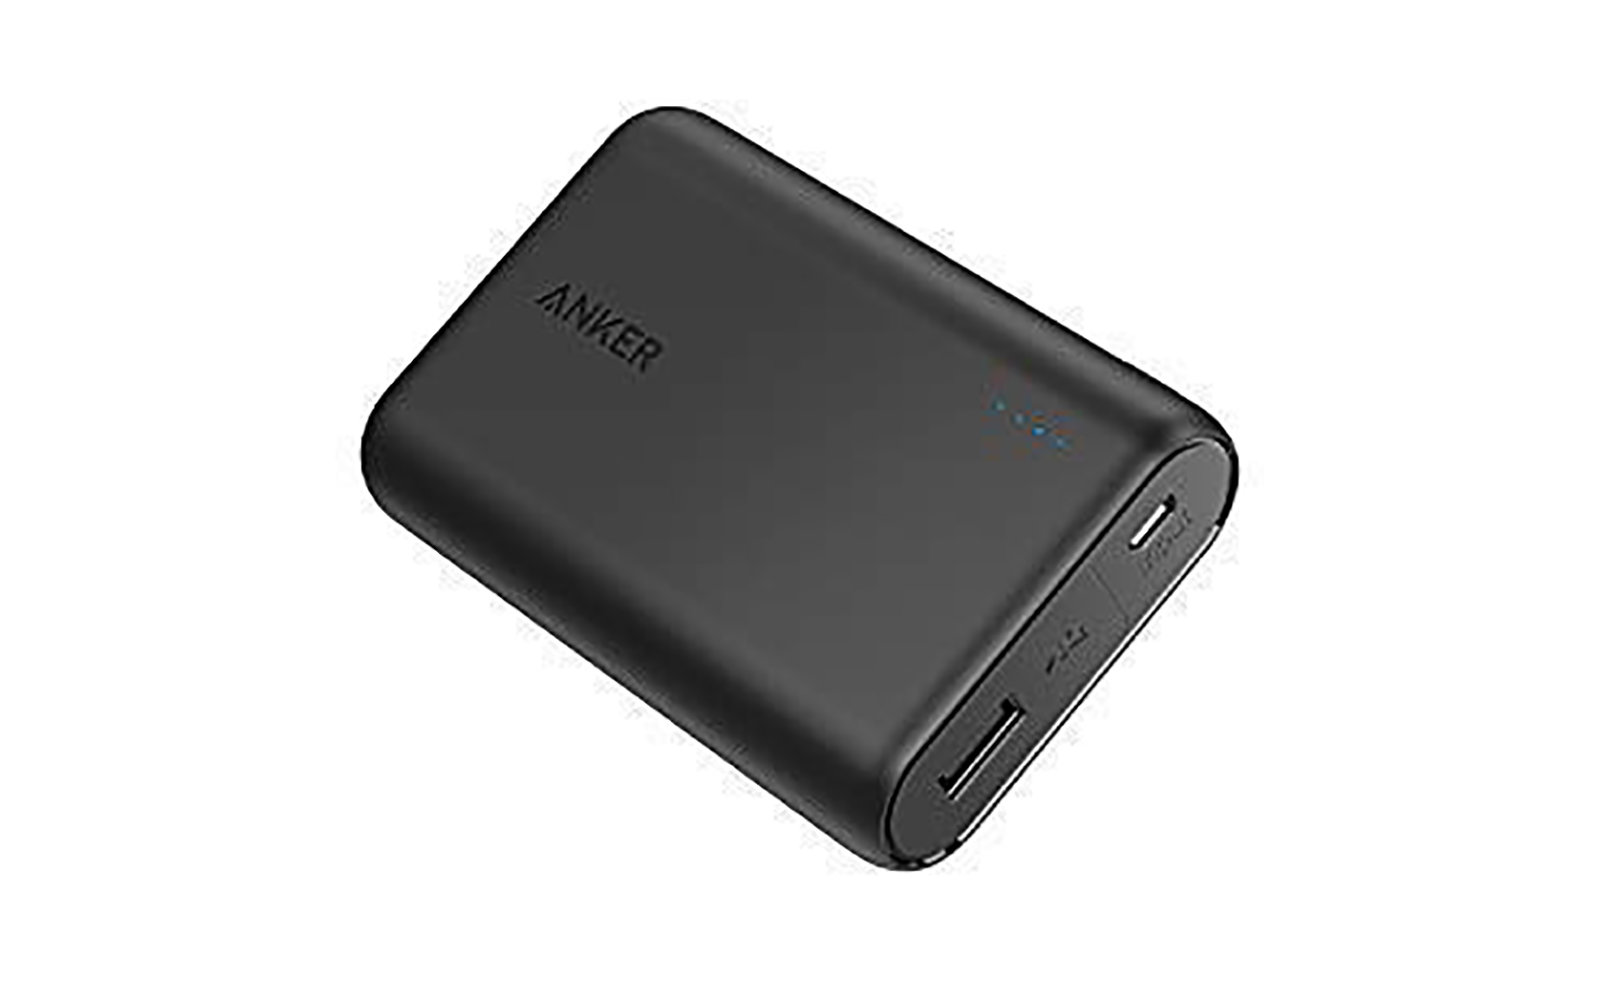 6. Anker PowerCore Ultra Compact Portable Charger